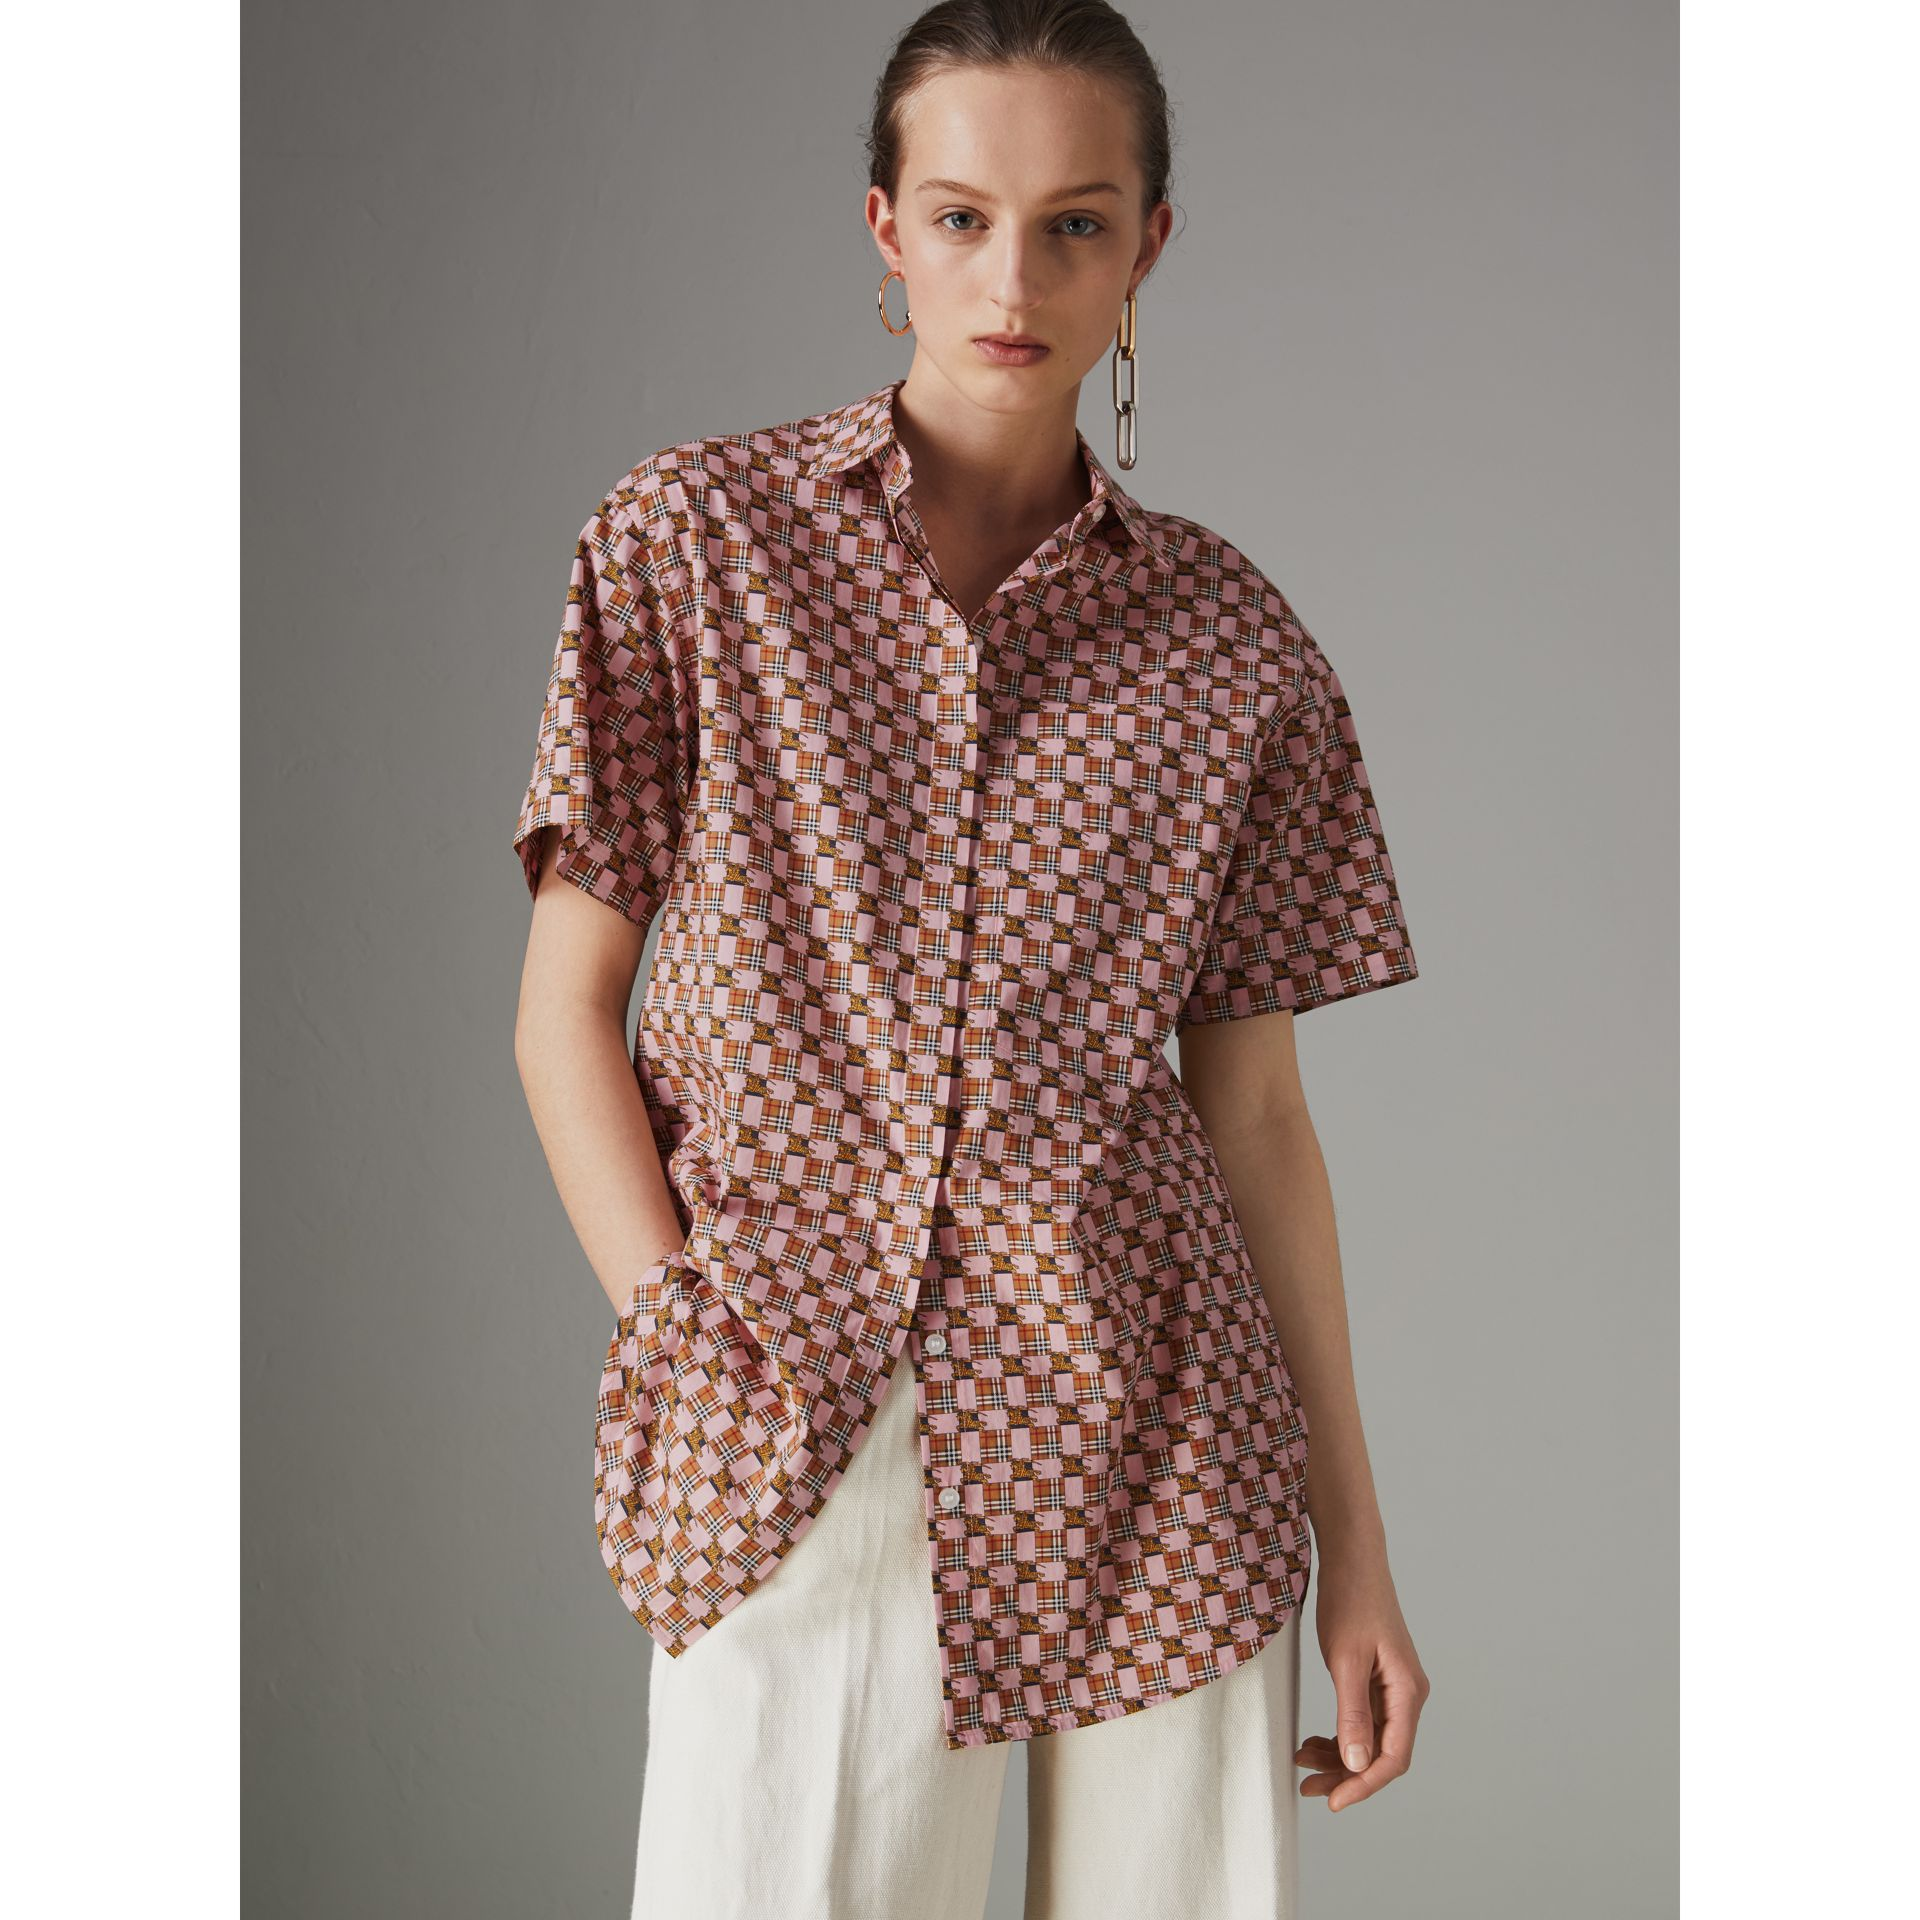 Short-sleeve Tiled Archive Print Shirt in Pink - Women | Burberry - gallery image 4